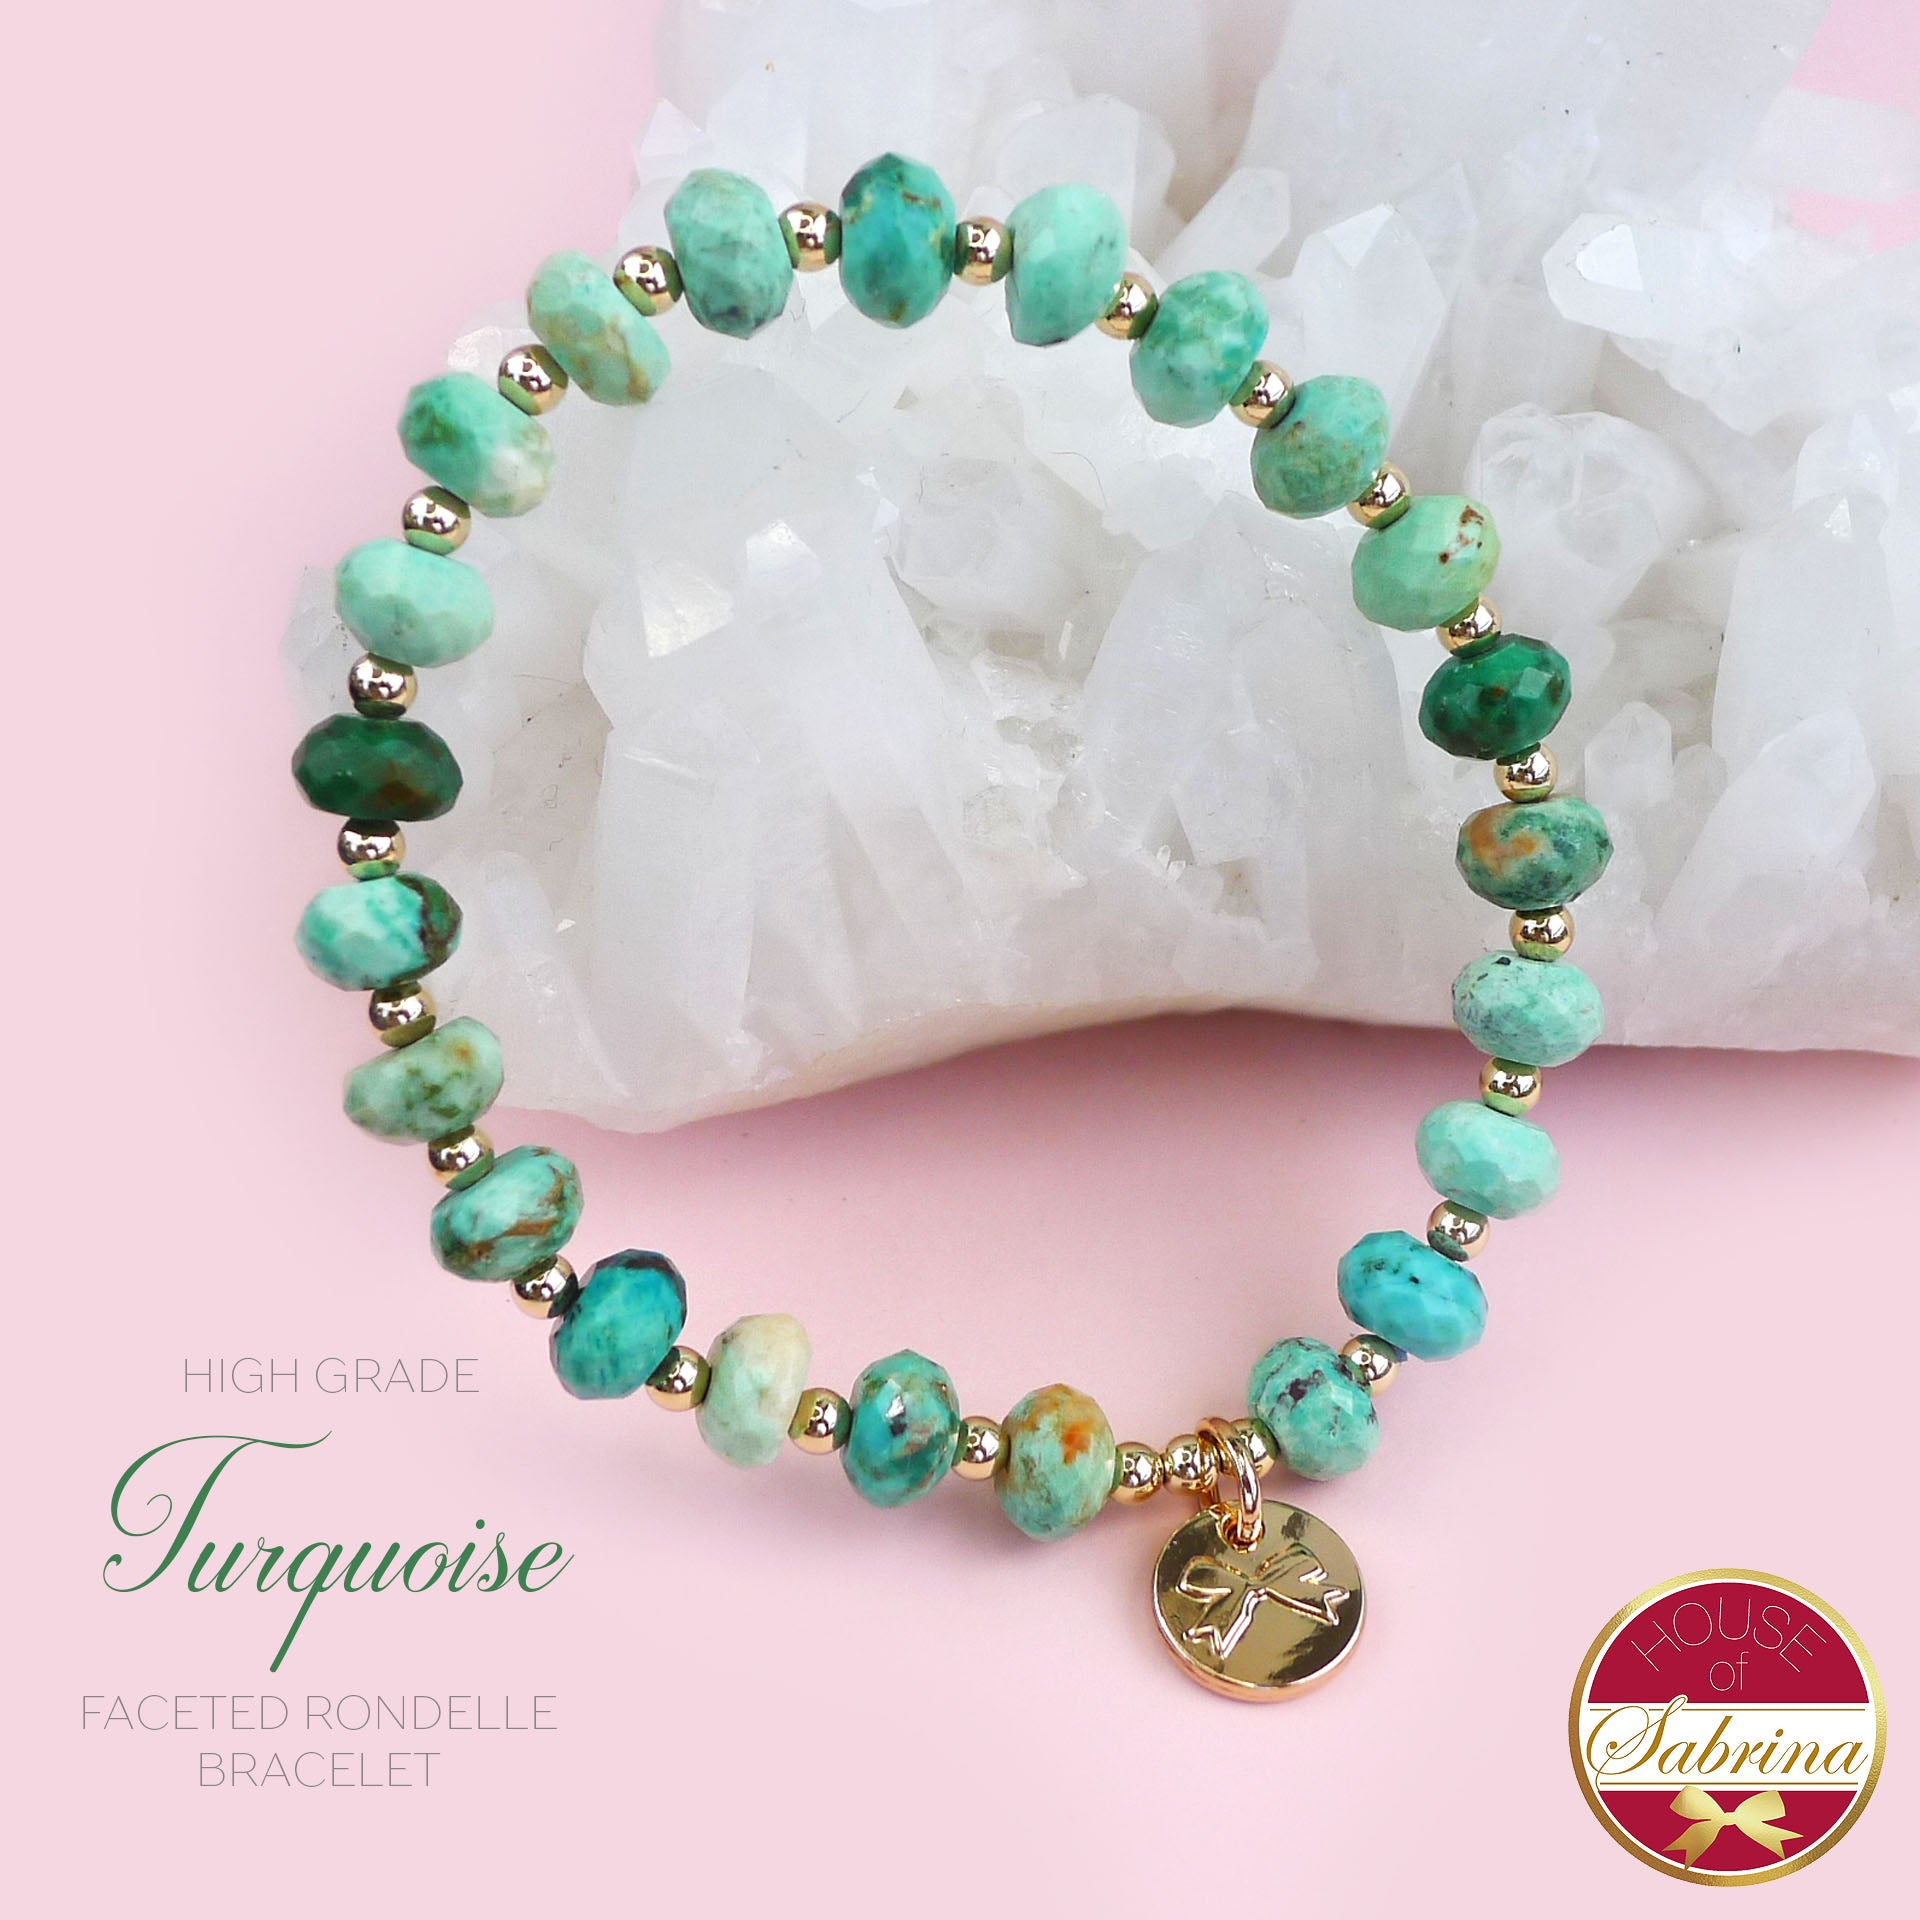 HIGH GRADE FACETED RONDELLE TURQUOISE GEMSTONE BRACELET